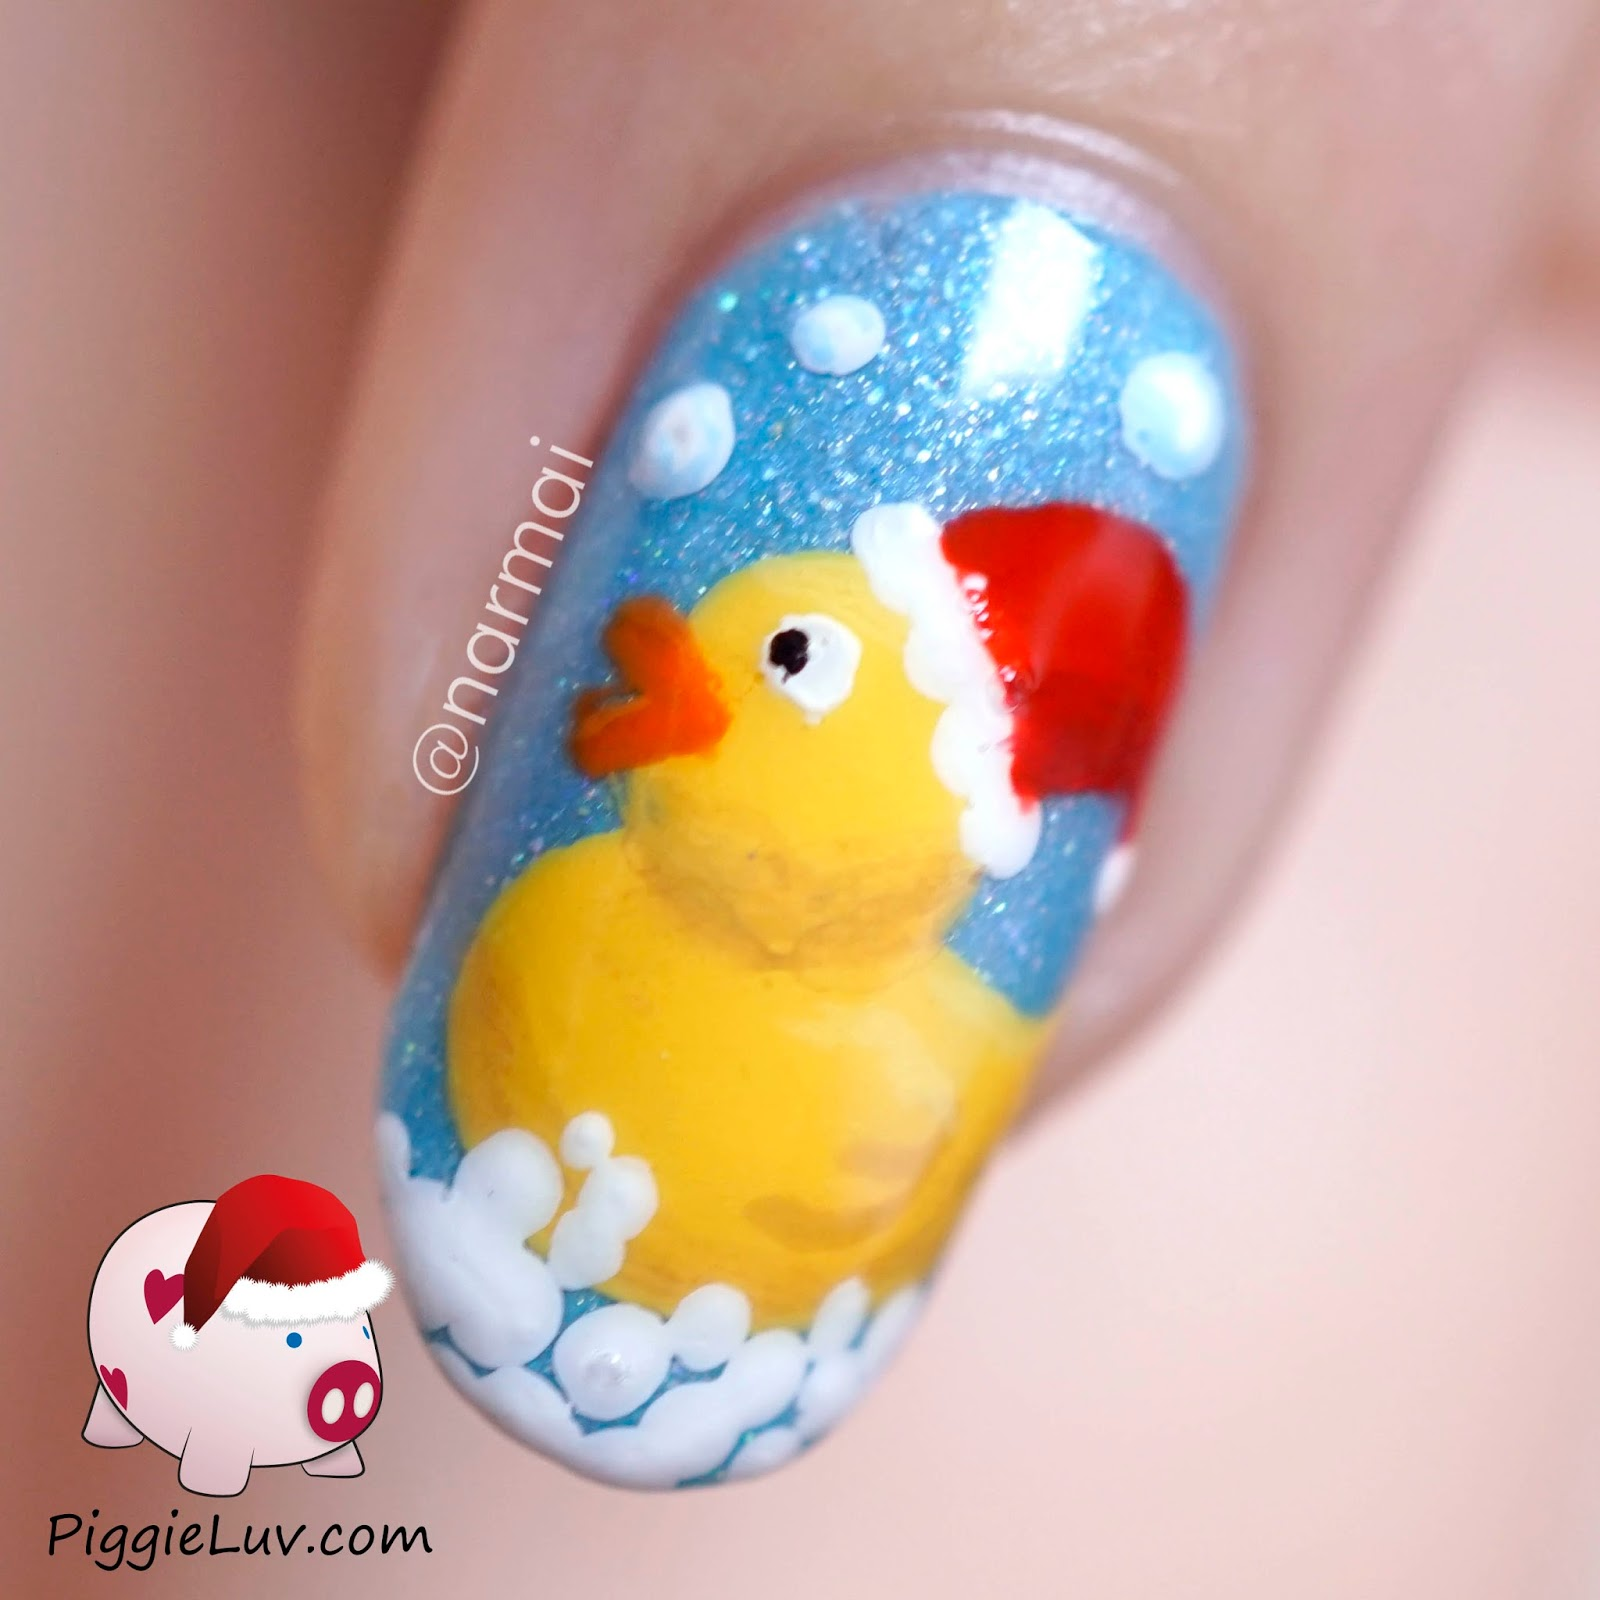 Piggieluv Rubber Ducky Nail Art With Santa Hat For Christmas